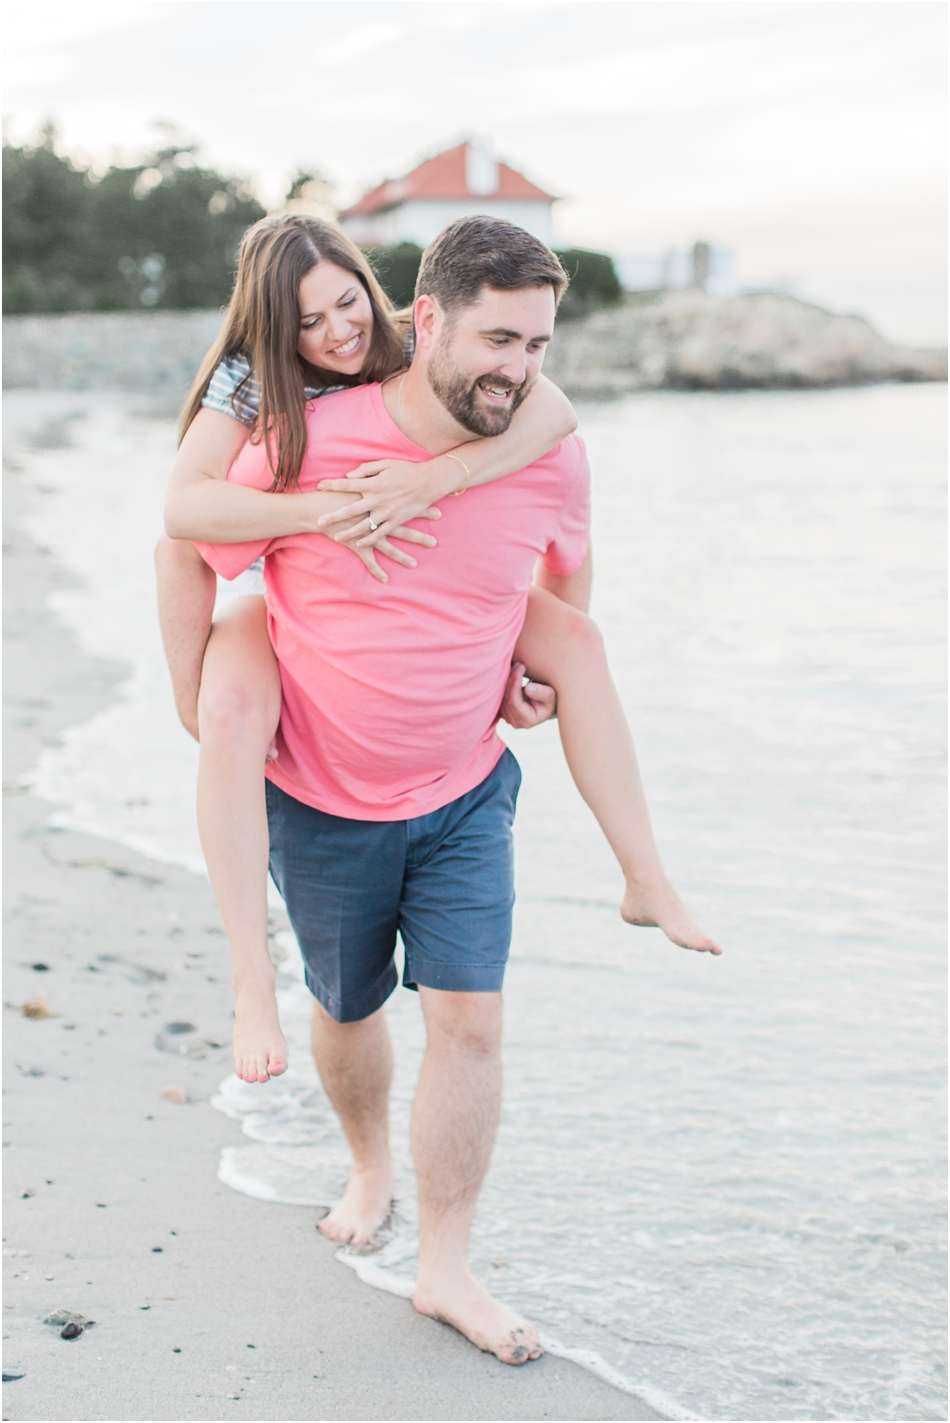 cohasset_beach_harbor_engagement_massachusetts_cape_cod_new_england_wedding_photographer_Meredith_Jane_Photography_photo_2148.jpg